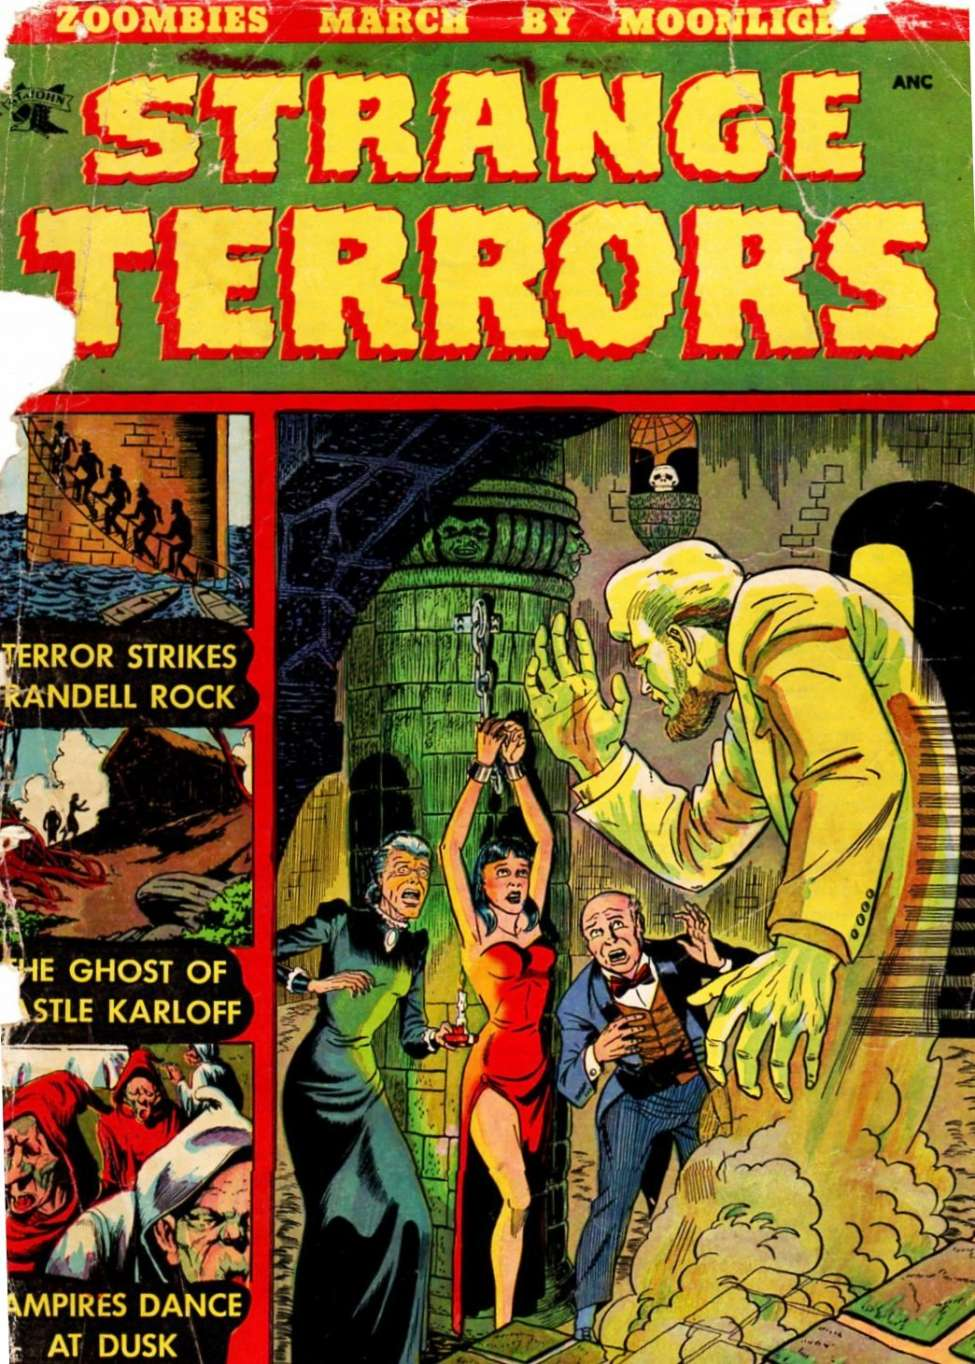 Strange Terrors (1952) #1, cover by Don Perlin.